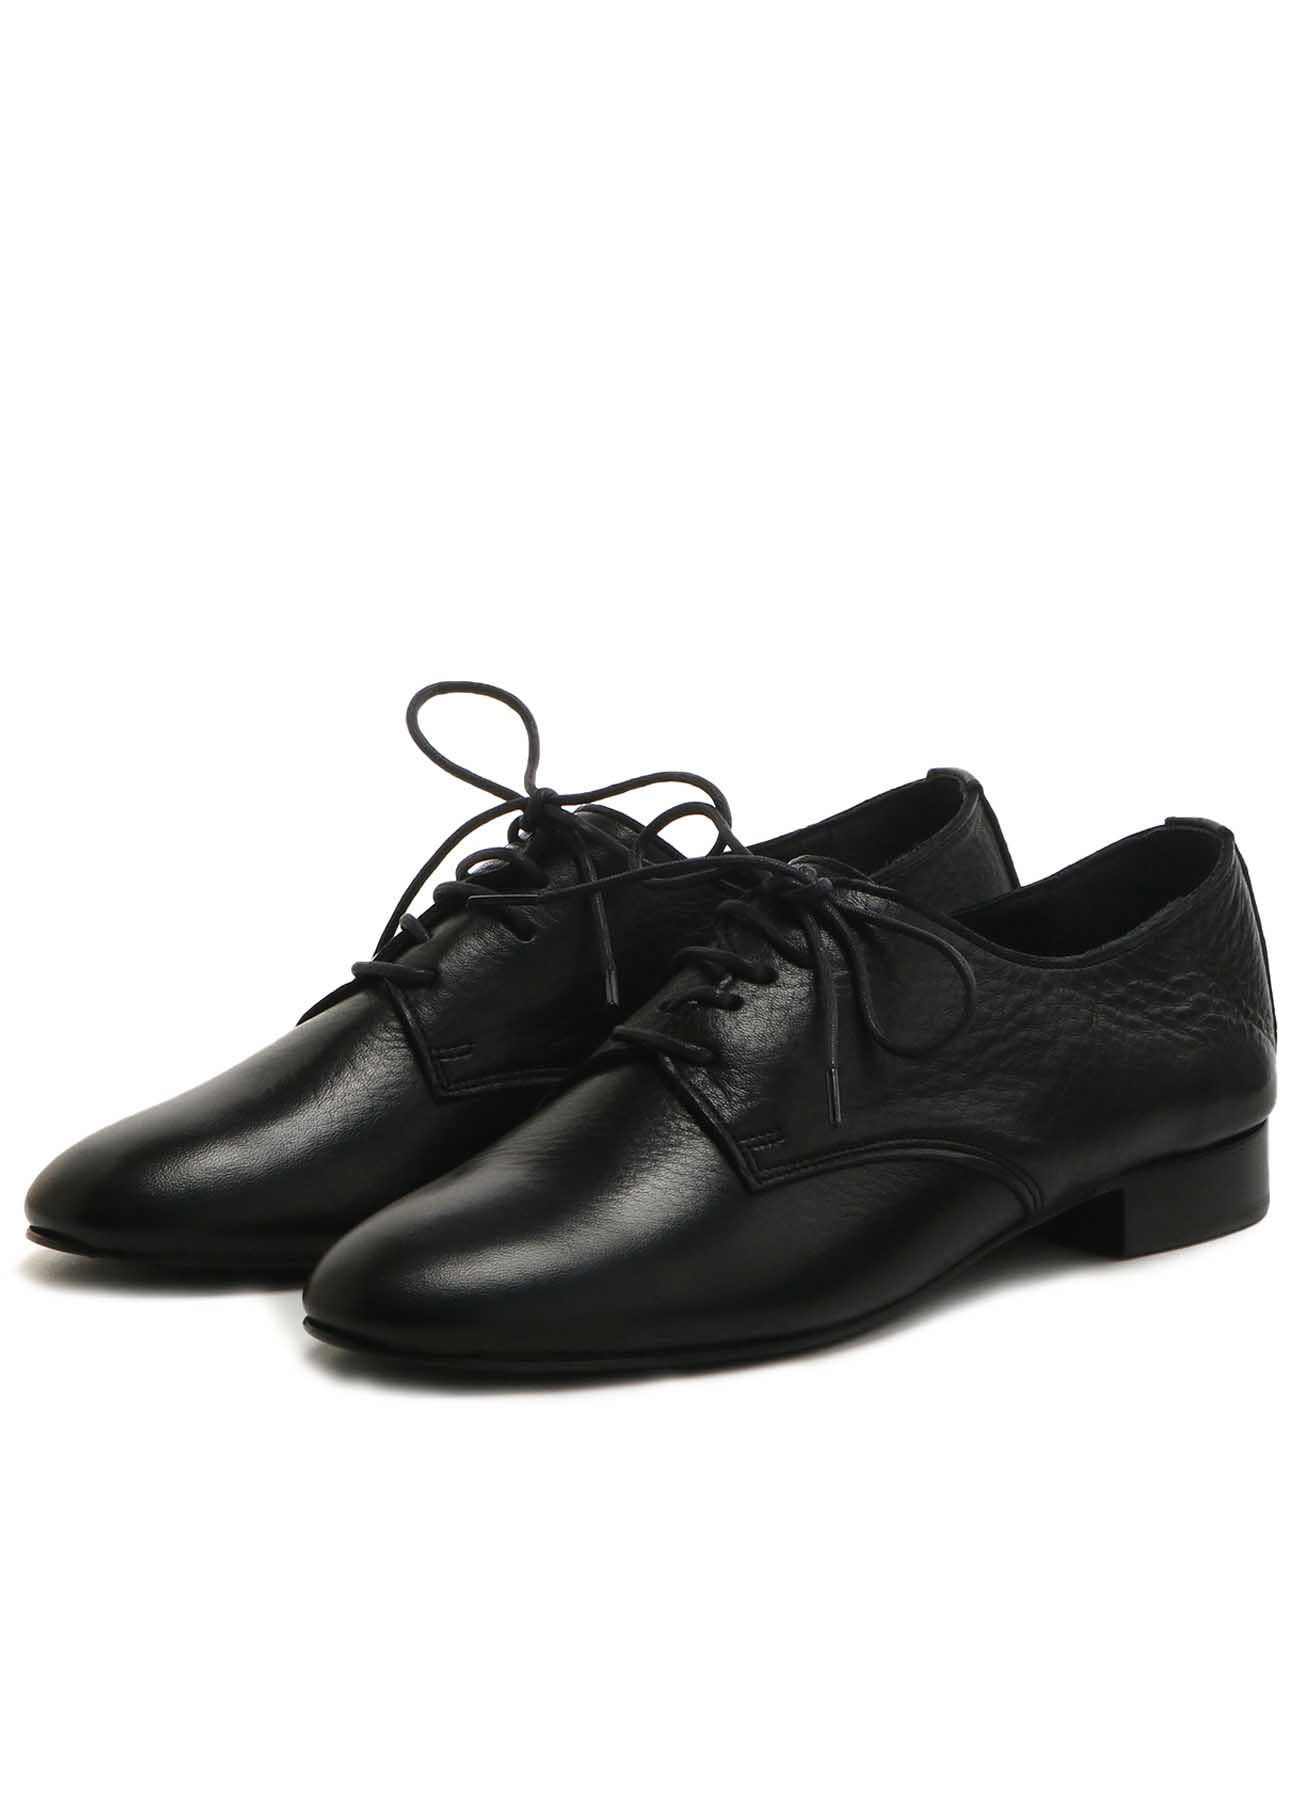 SOFT LEATHER PLAIN TOE SHOES